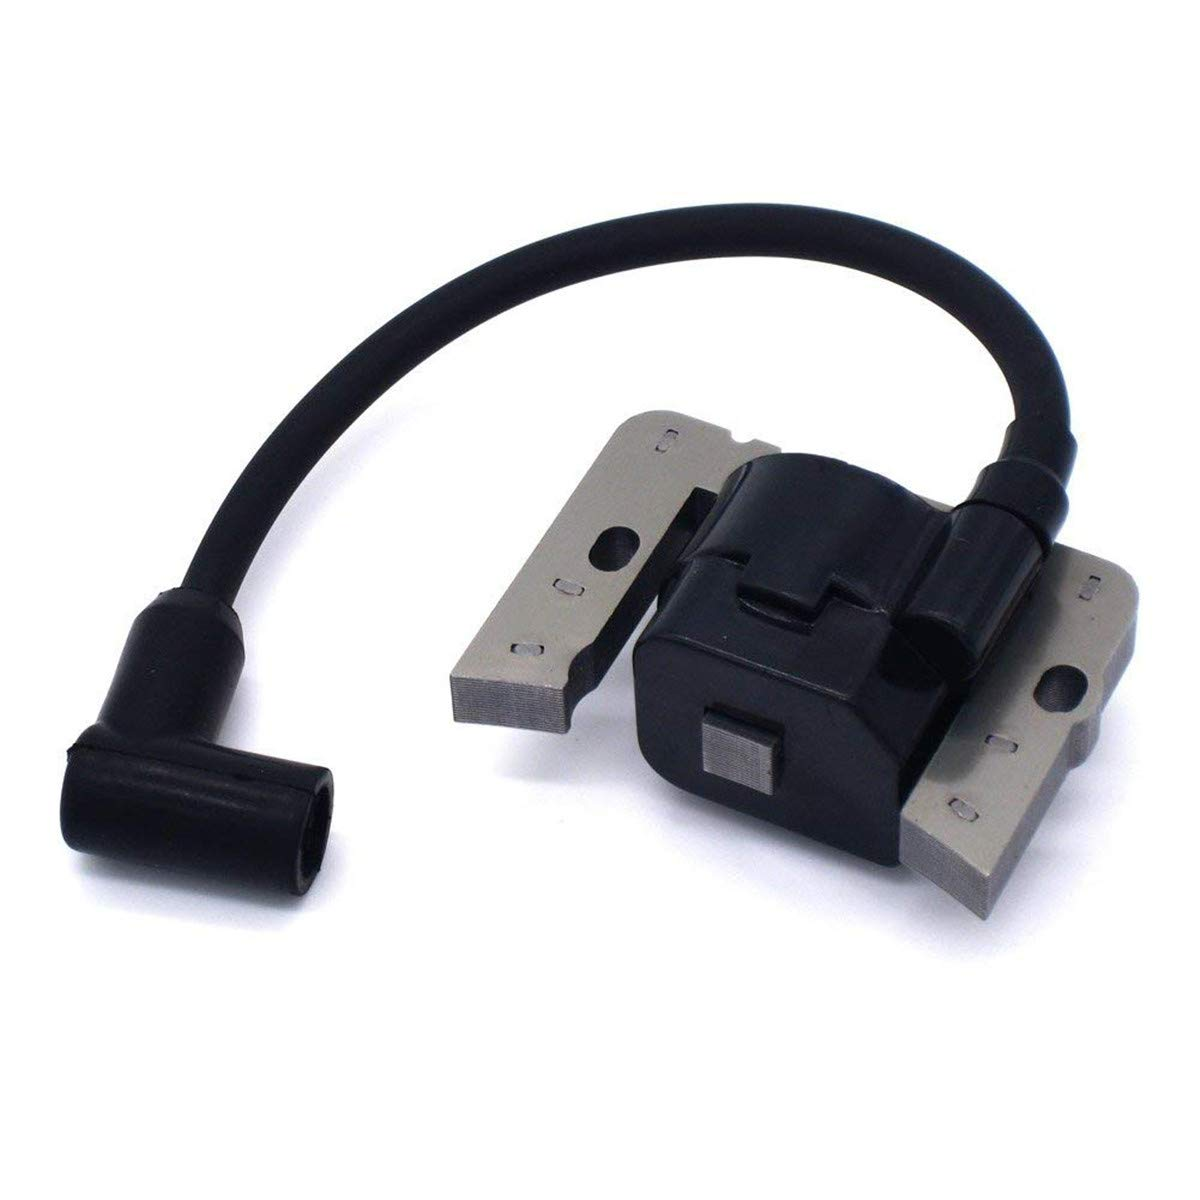 35135B Snow Blower Amhousejoy Ignition Coil for Tecumseh HM80 HM90 HM100 HMSK85 HMSK90 HMSK100 LH318SA LH318XA LH358EA LH358SA 35135 35135A